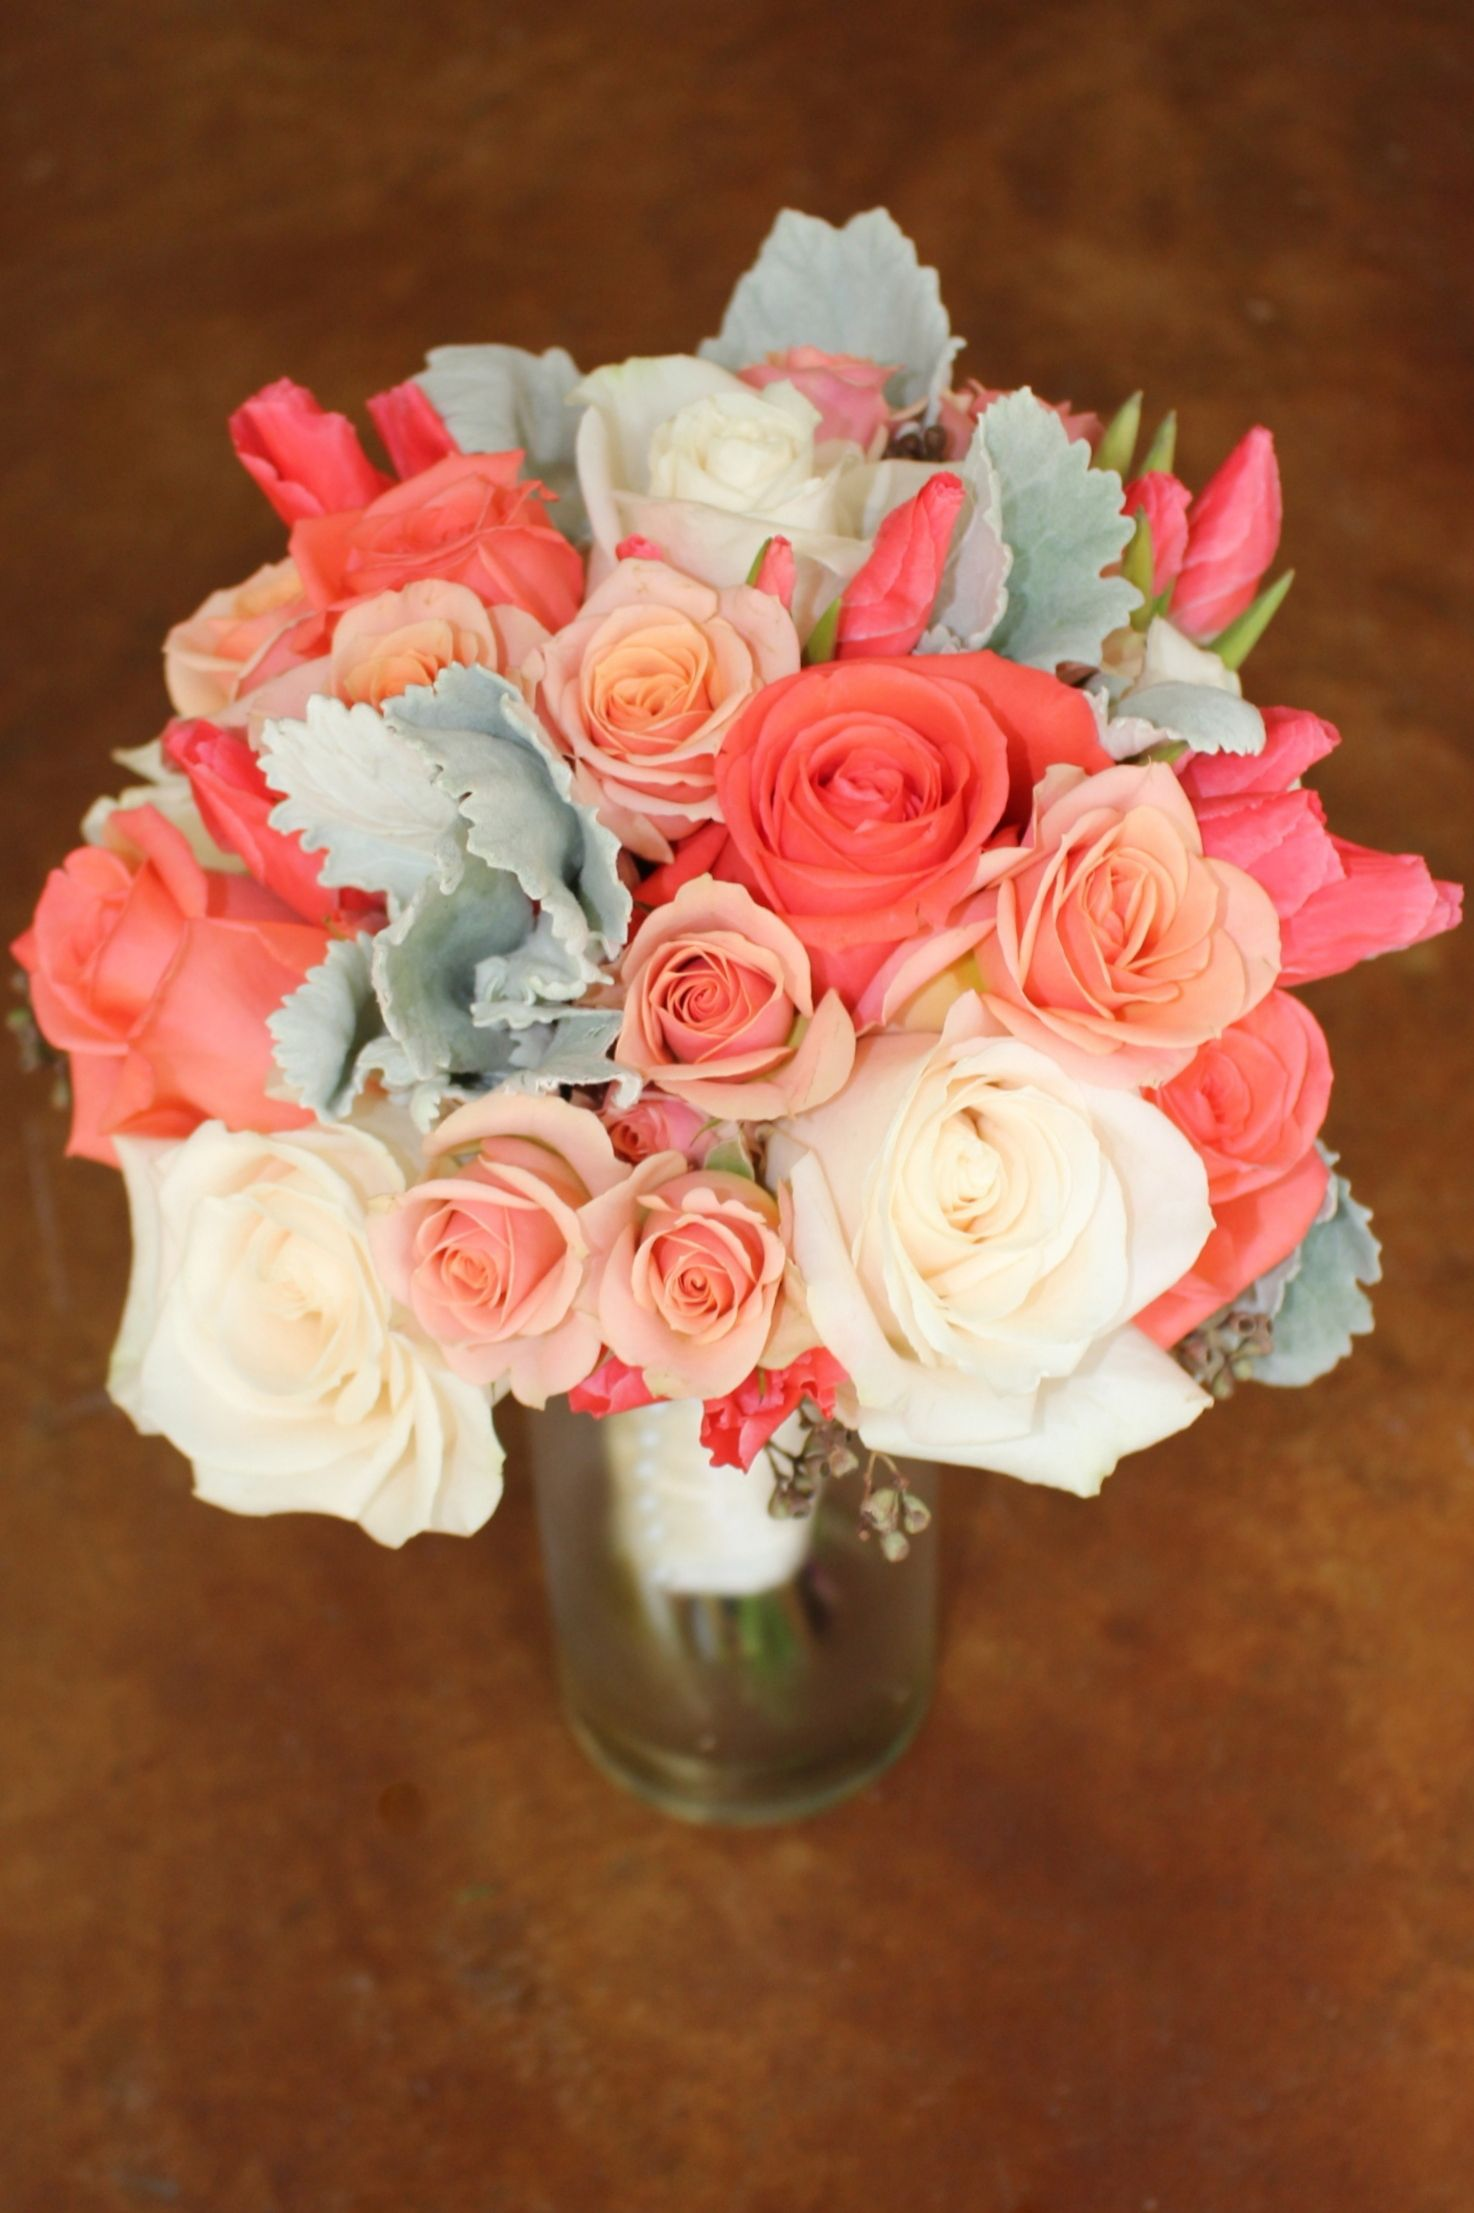 Coral Peach Ivory Bouquet With Roses Godetia And Dusty Miller Ivory Bouquets Bridesmaid Bouquet Bouquet